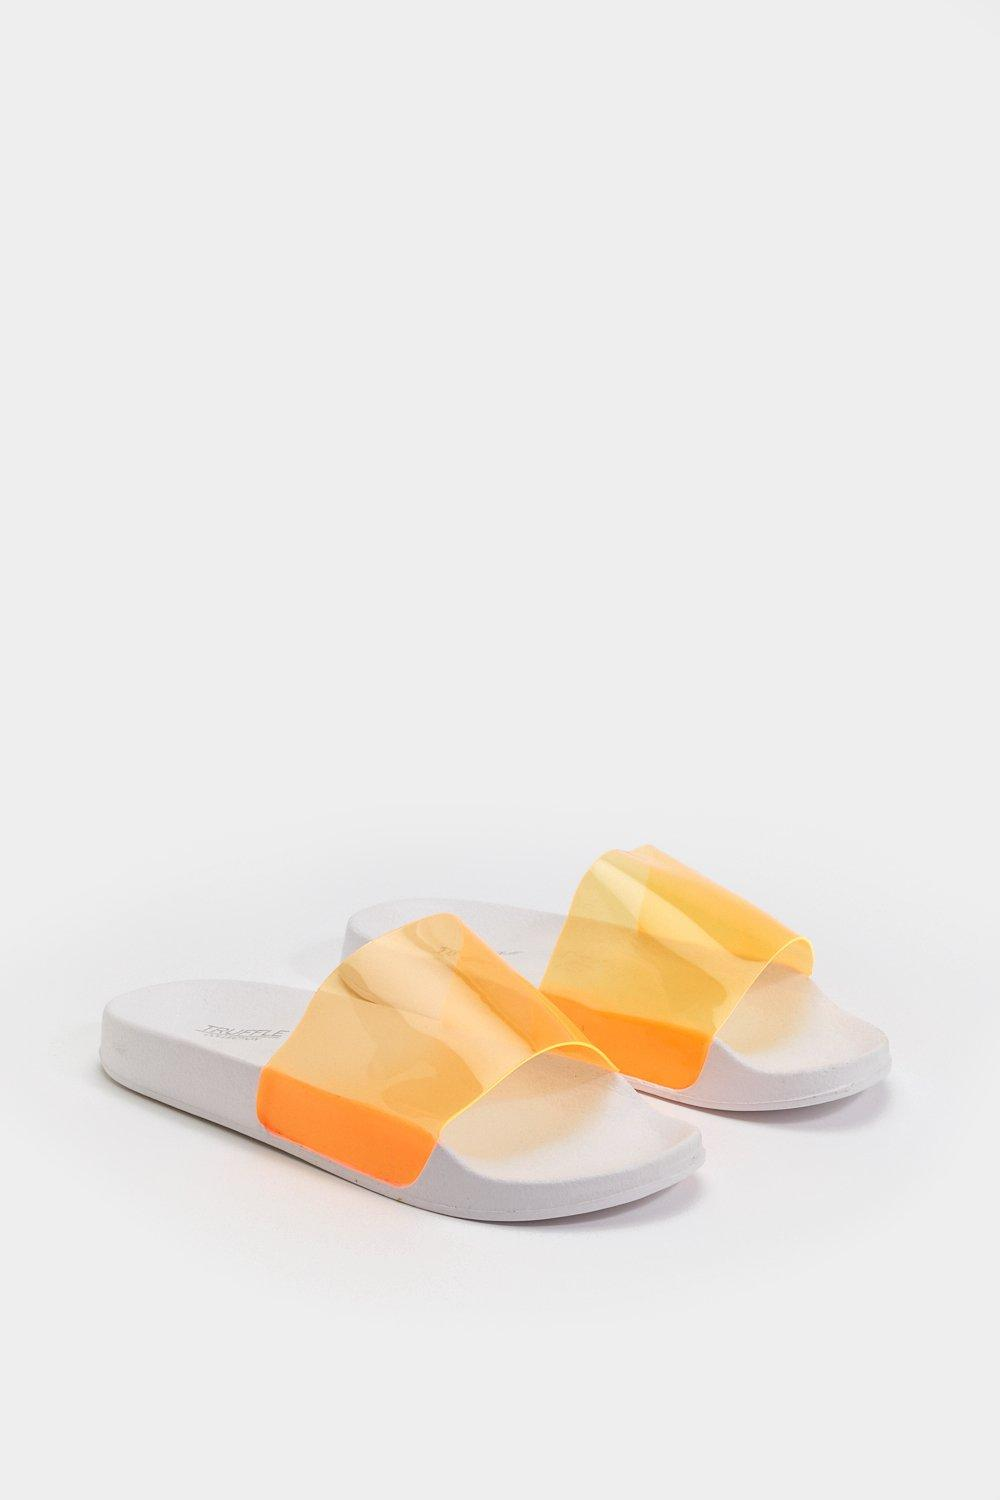 AMBER TURNER 'BEACH PLEASE' NEON ORANGE PERSPEX SLIDES